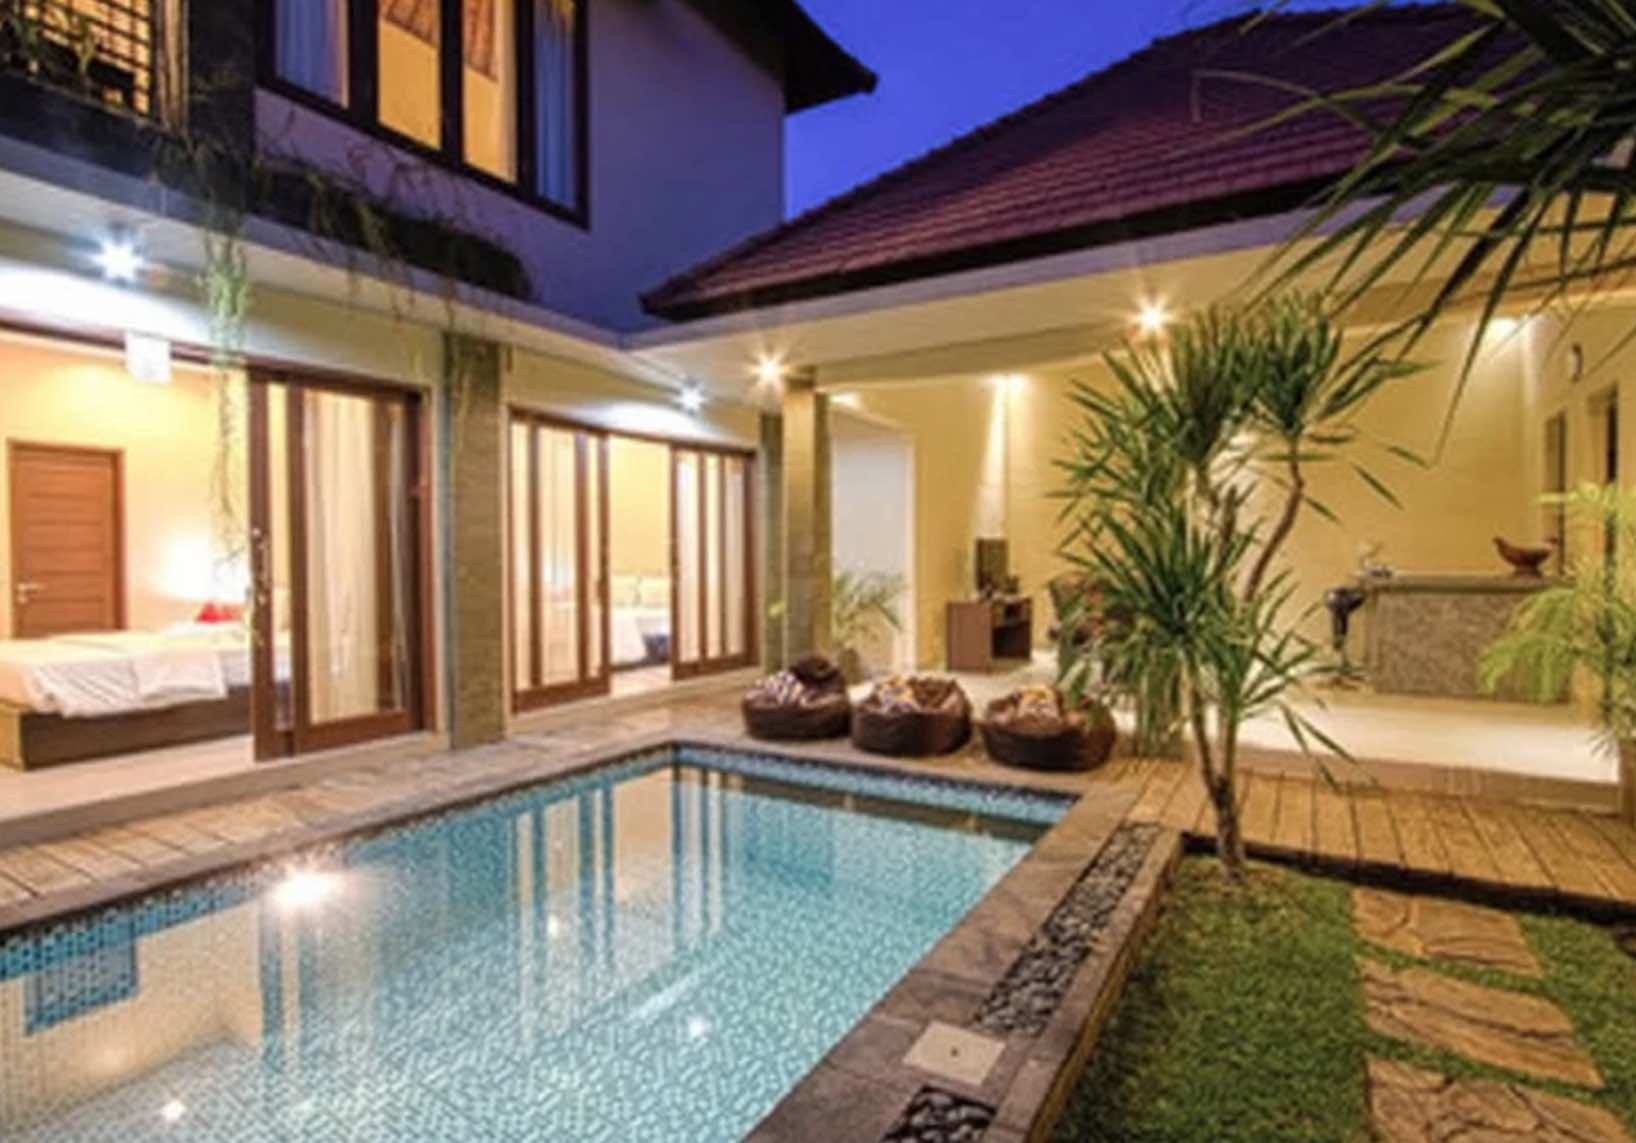 Factors Affecting the Cost of Building an Infinity Swimming Pool- This will give you a Prior Knowledge